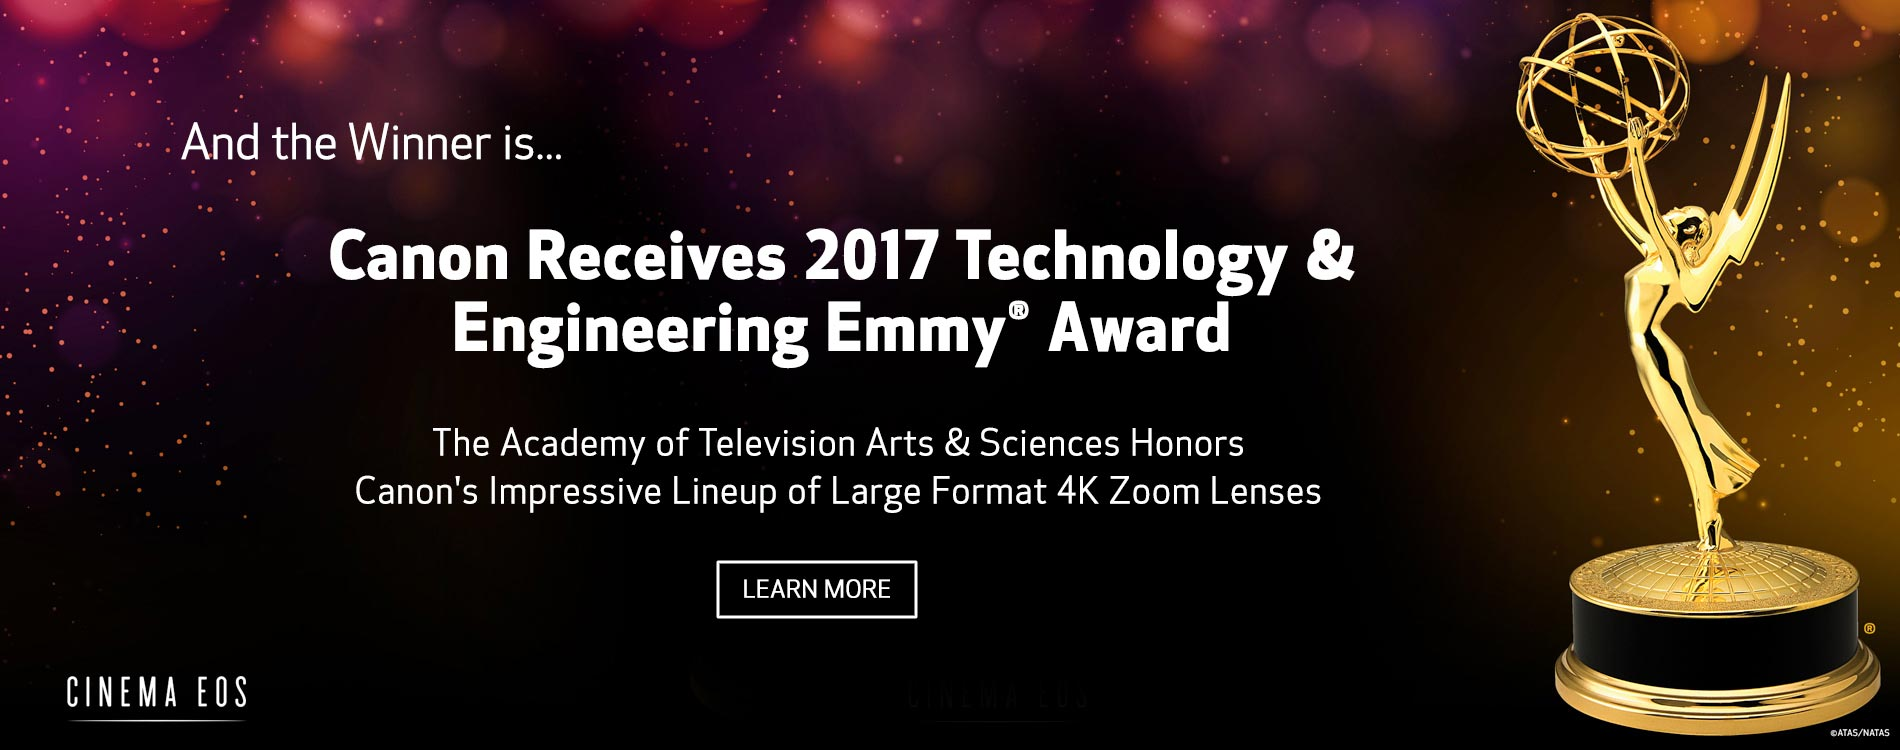 Canon Receives 2017 Technology & Engineering Emmy® Award